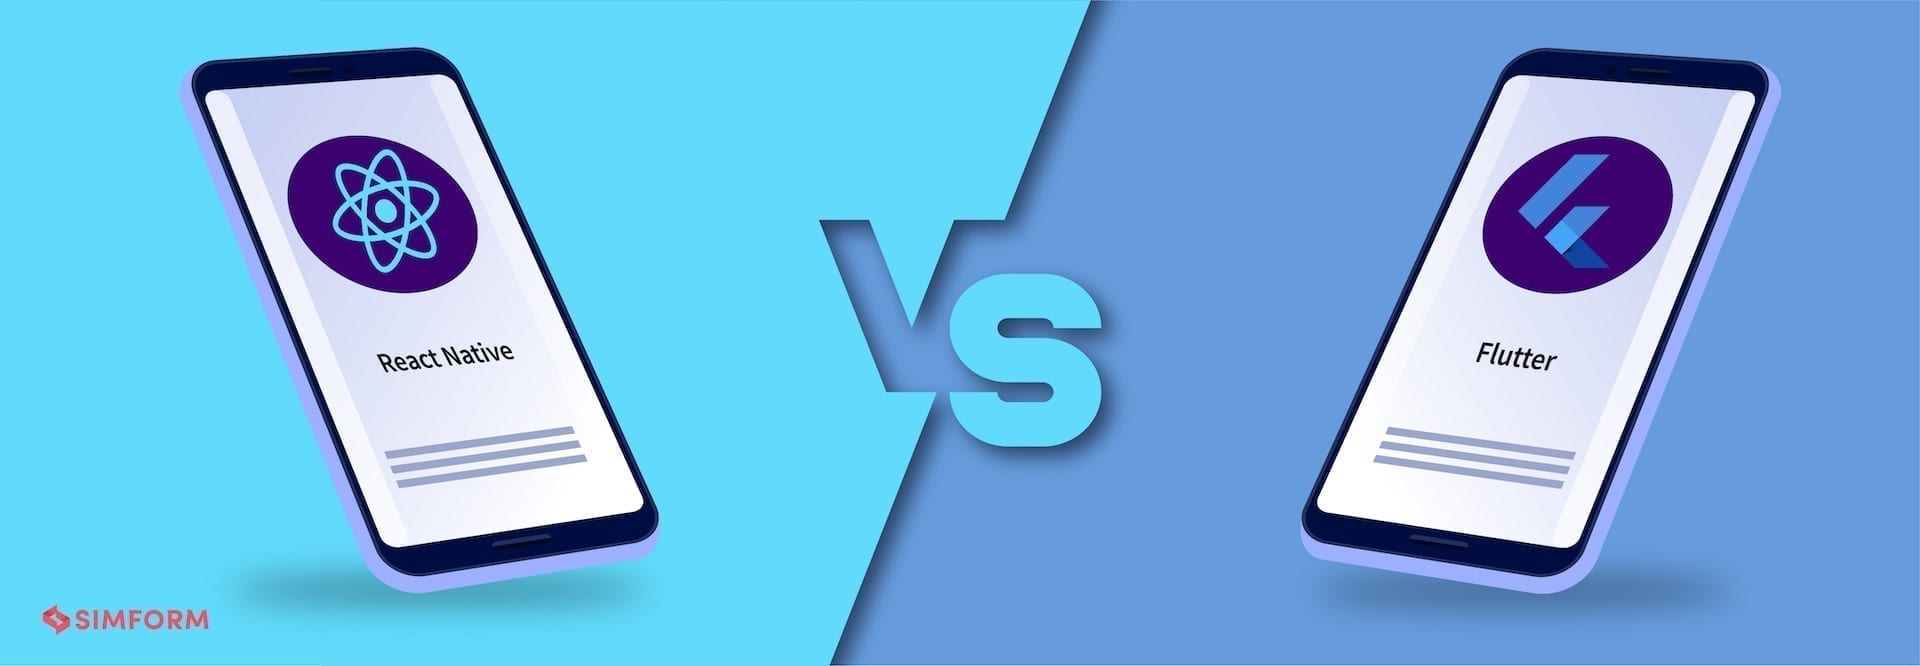 React native vs Flutter Banner Image